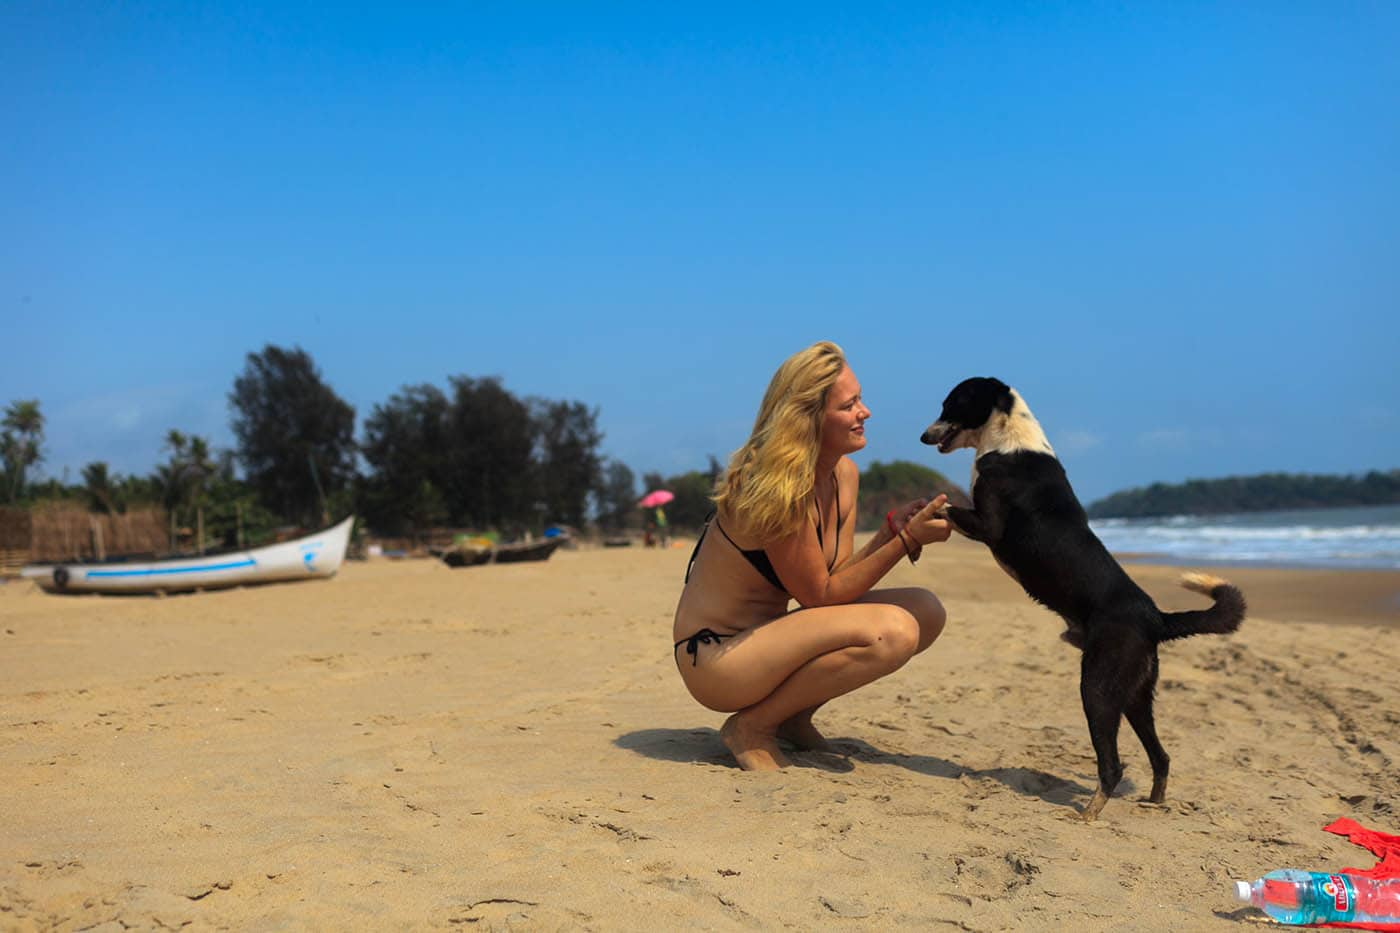 Dani with a dog on the beach in Palolem, Goa, India.